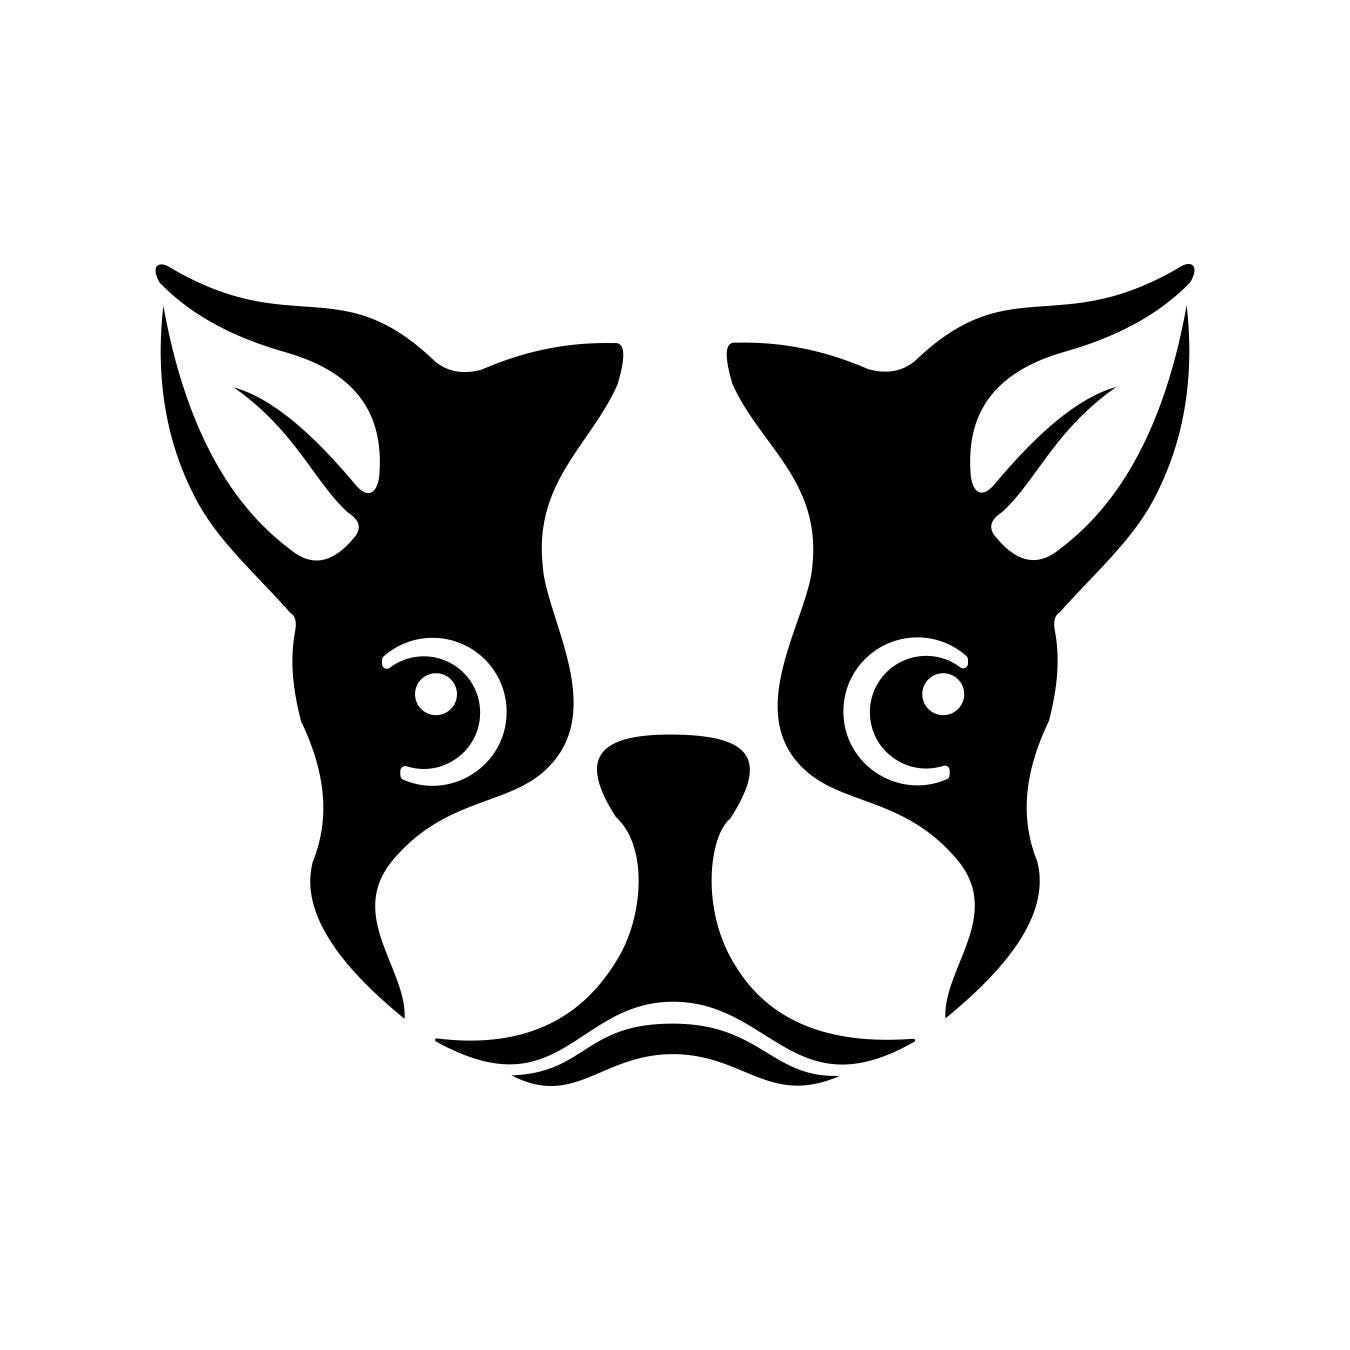 Boston Terrier Dog Head Graphics SVG Dxf EPS Png Cdr Ai Pdf